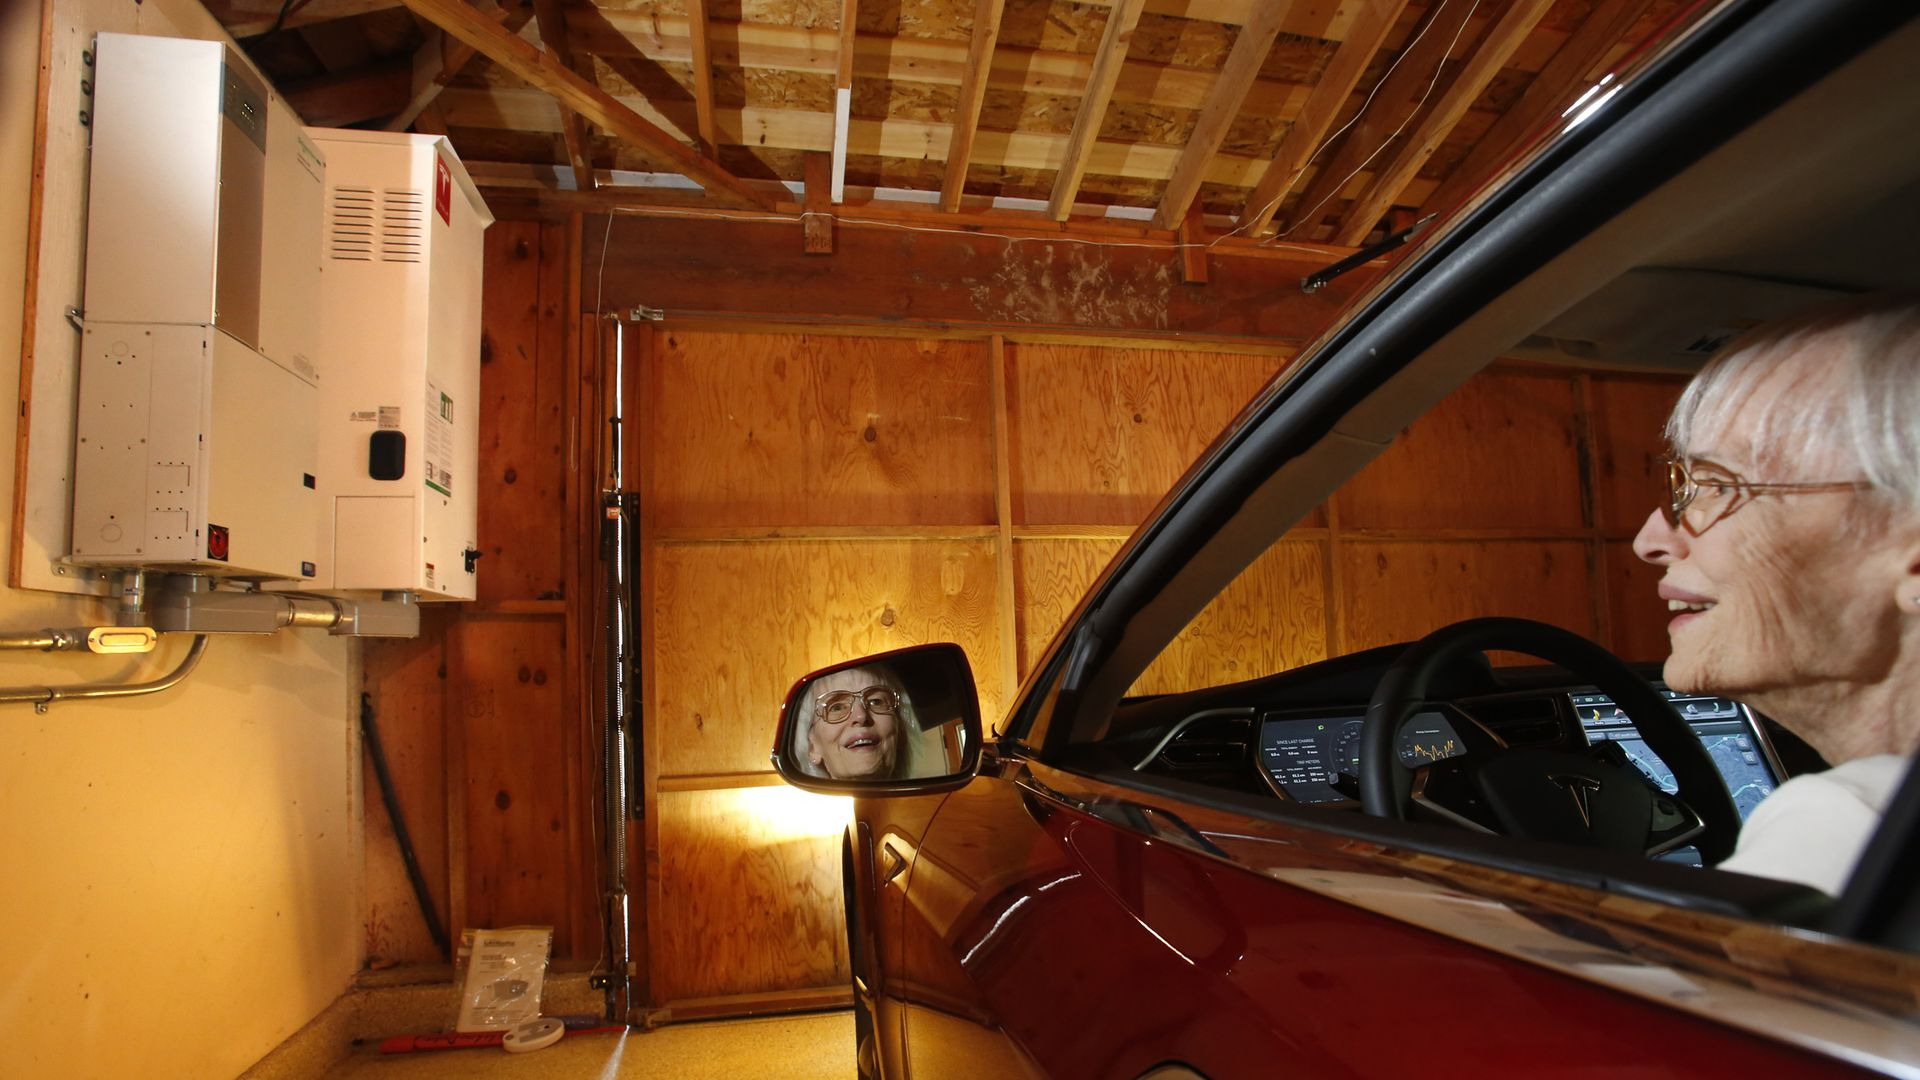 Utility rates driving record demand for home energy storage systems